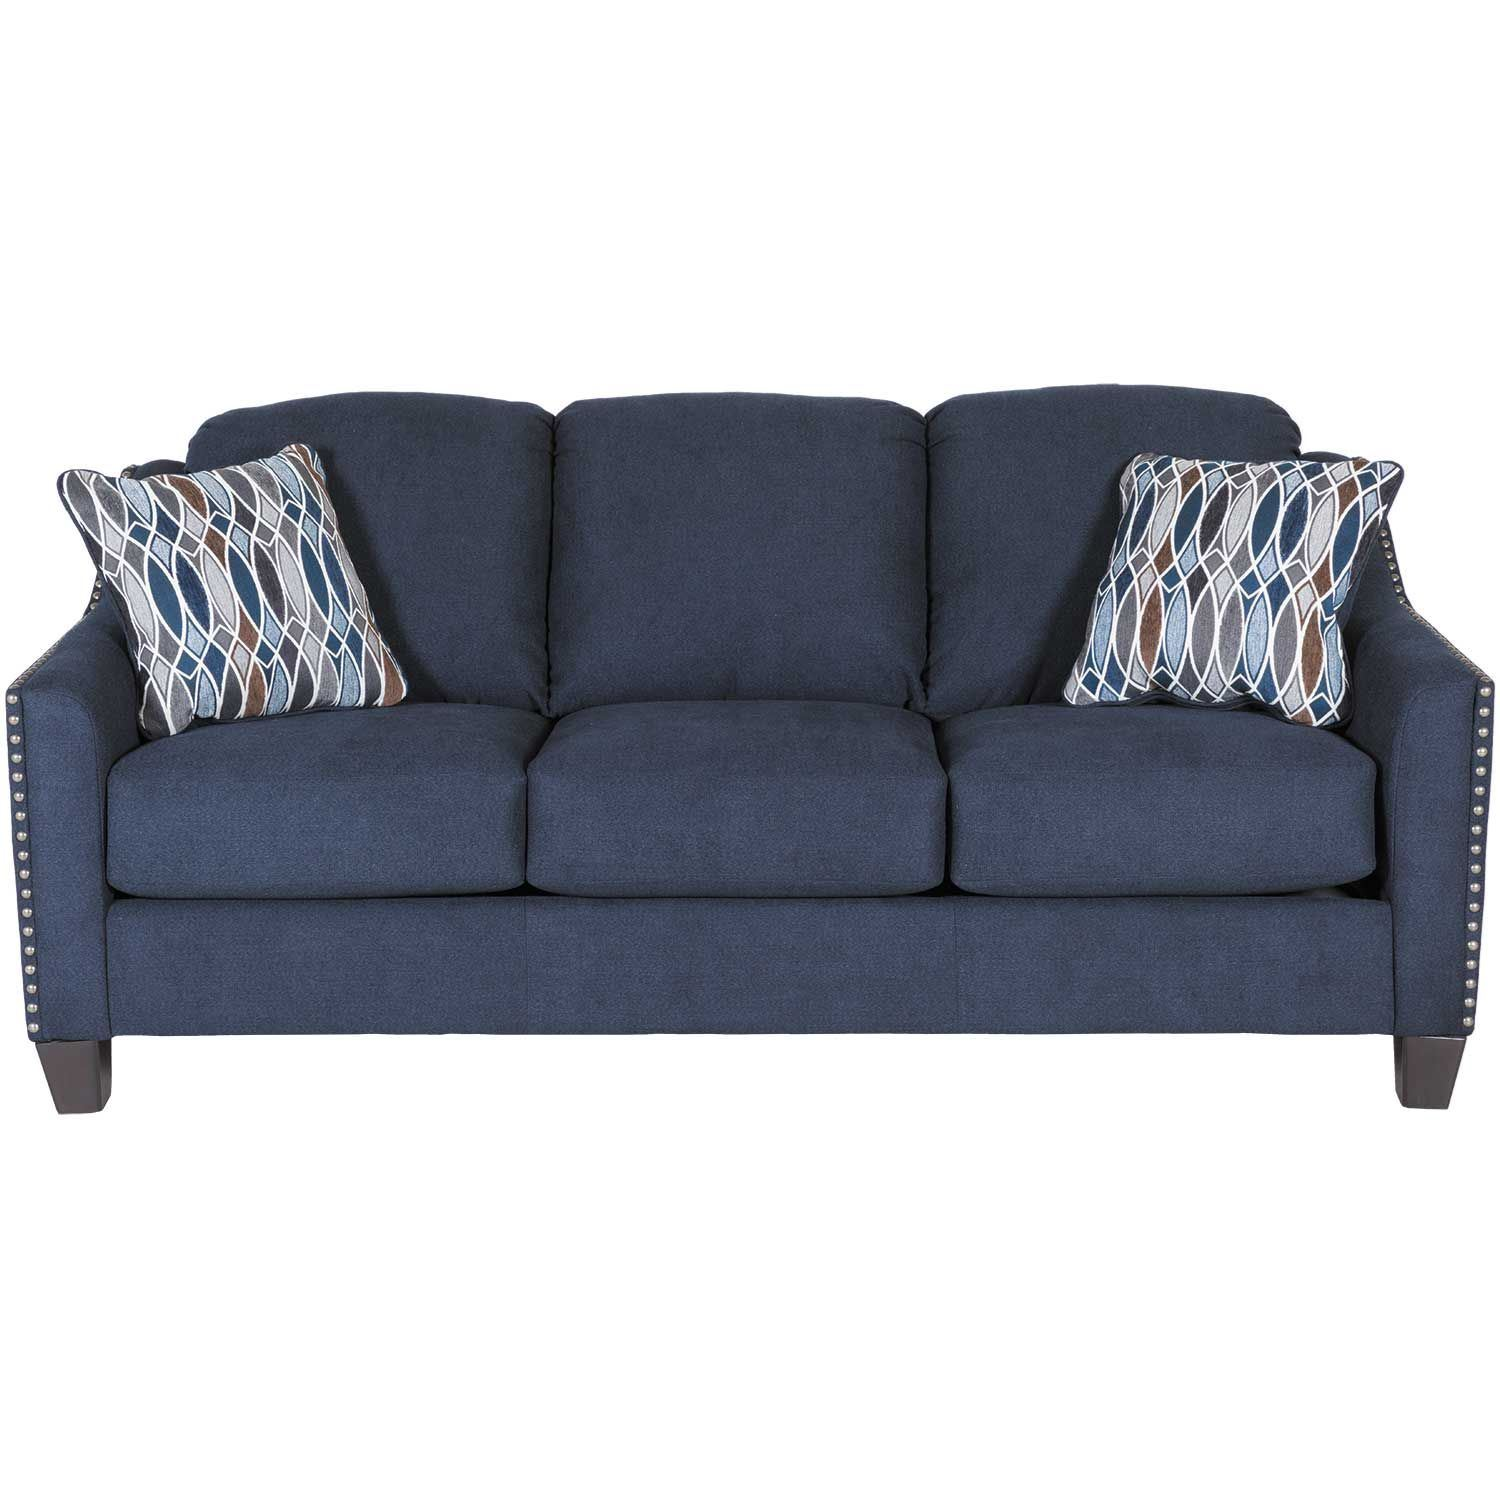 Picture of Creeal Heights Ink Sofa